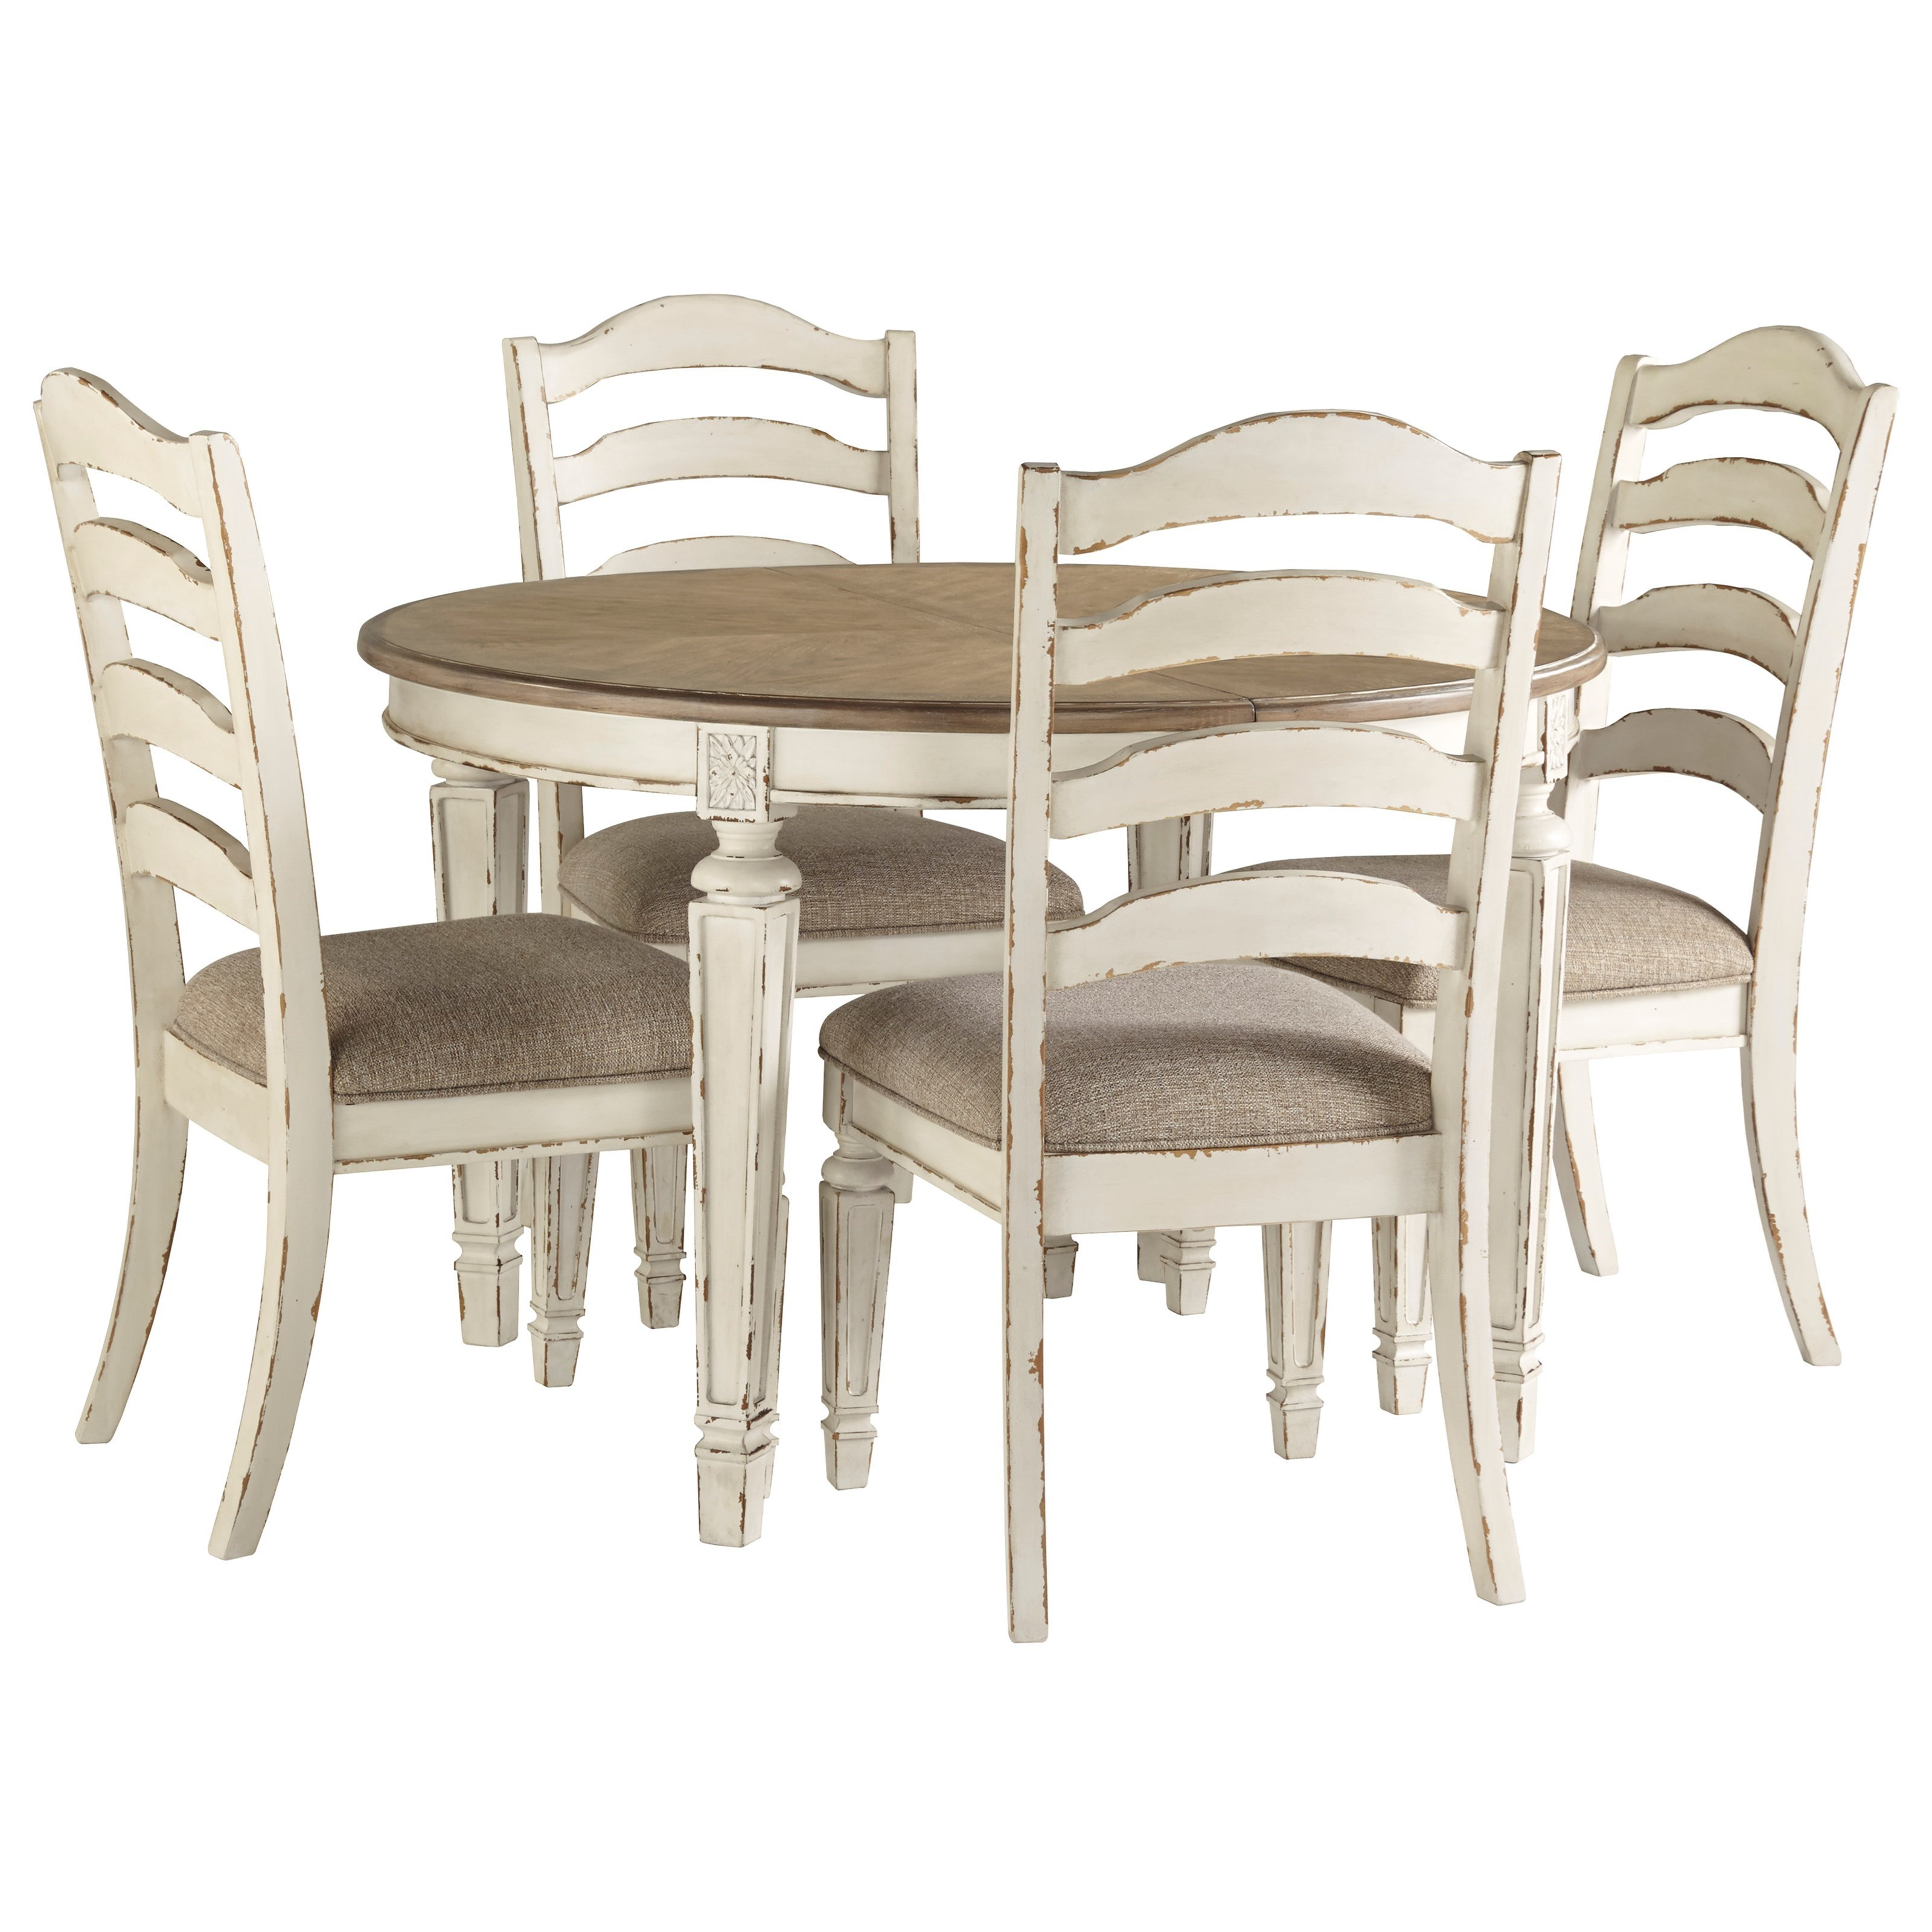 Realyn 5-Piece Table and Chair Set by Signature Design by Ashley at Furniture Barn